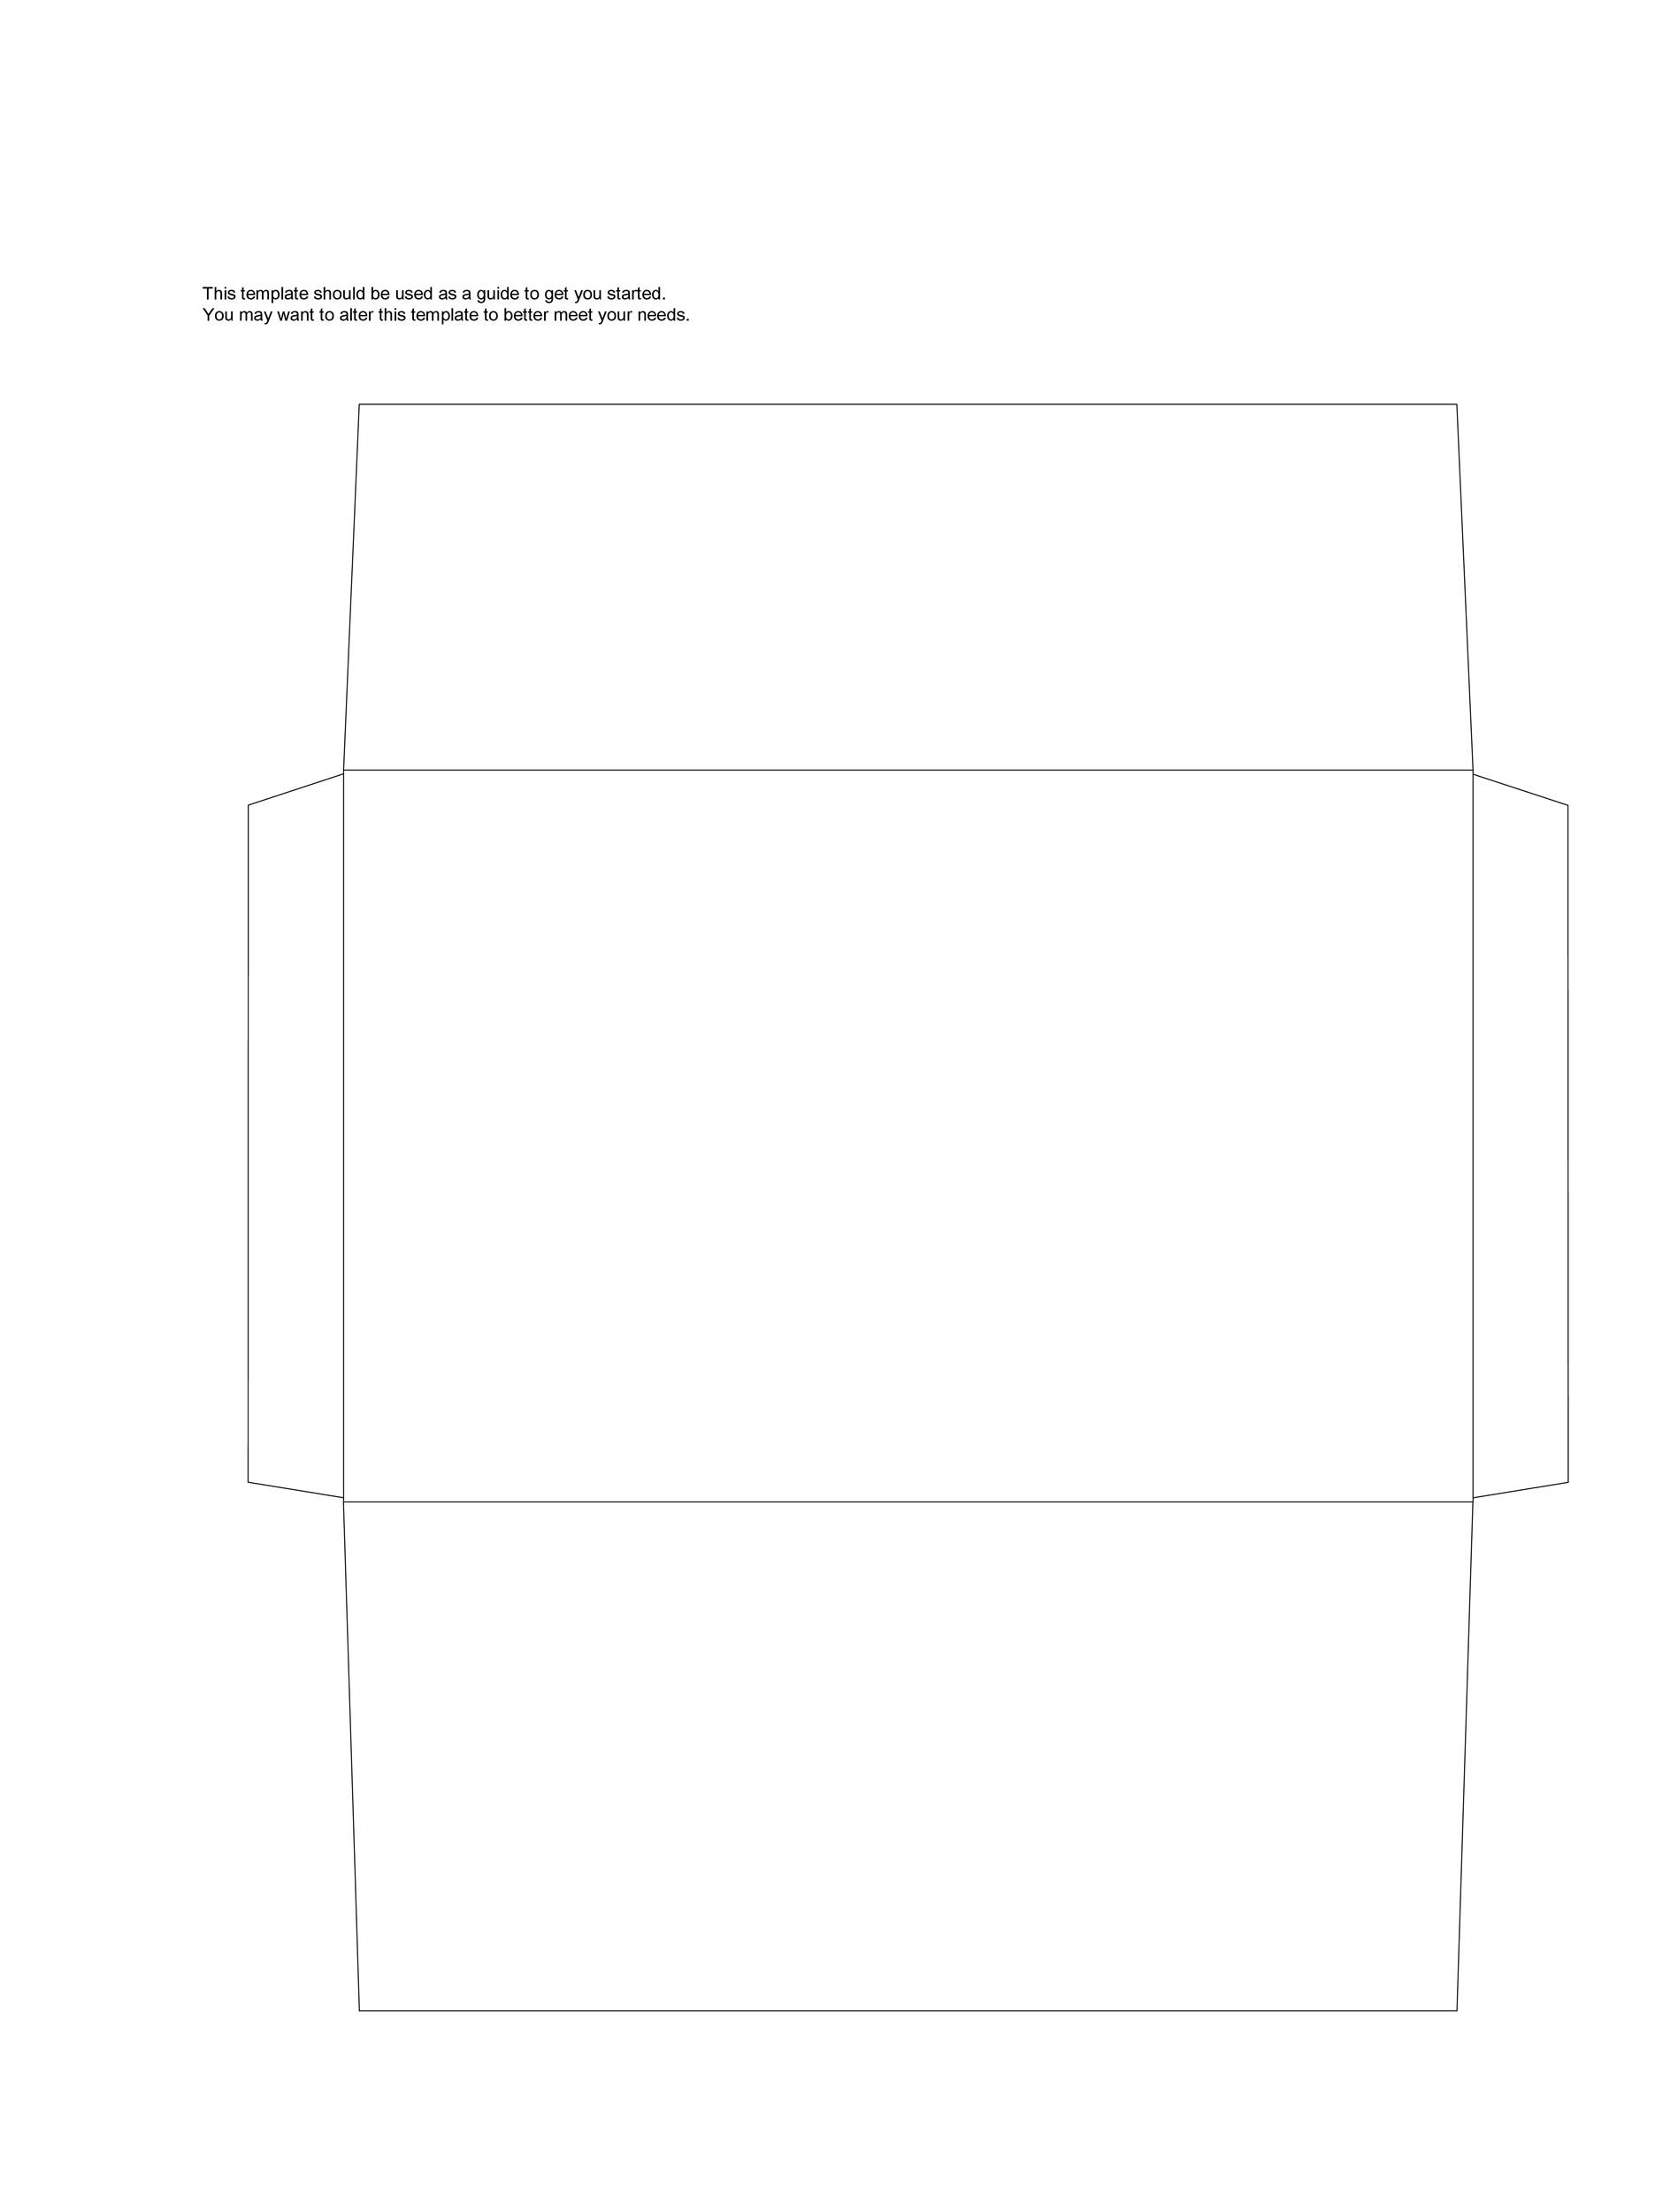 A6 Envelope Template from templatelab.com